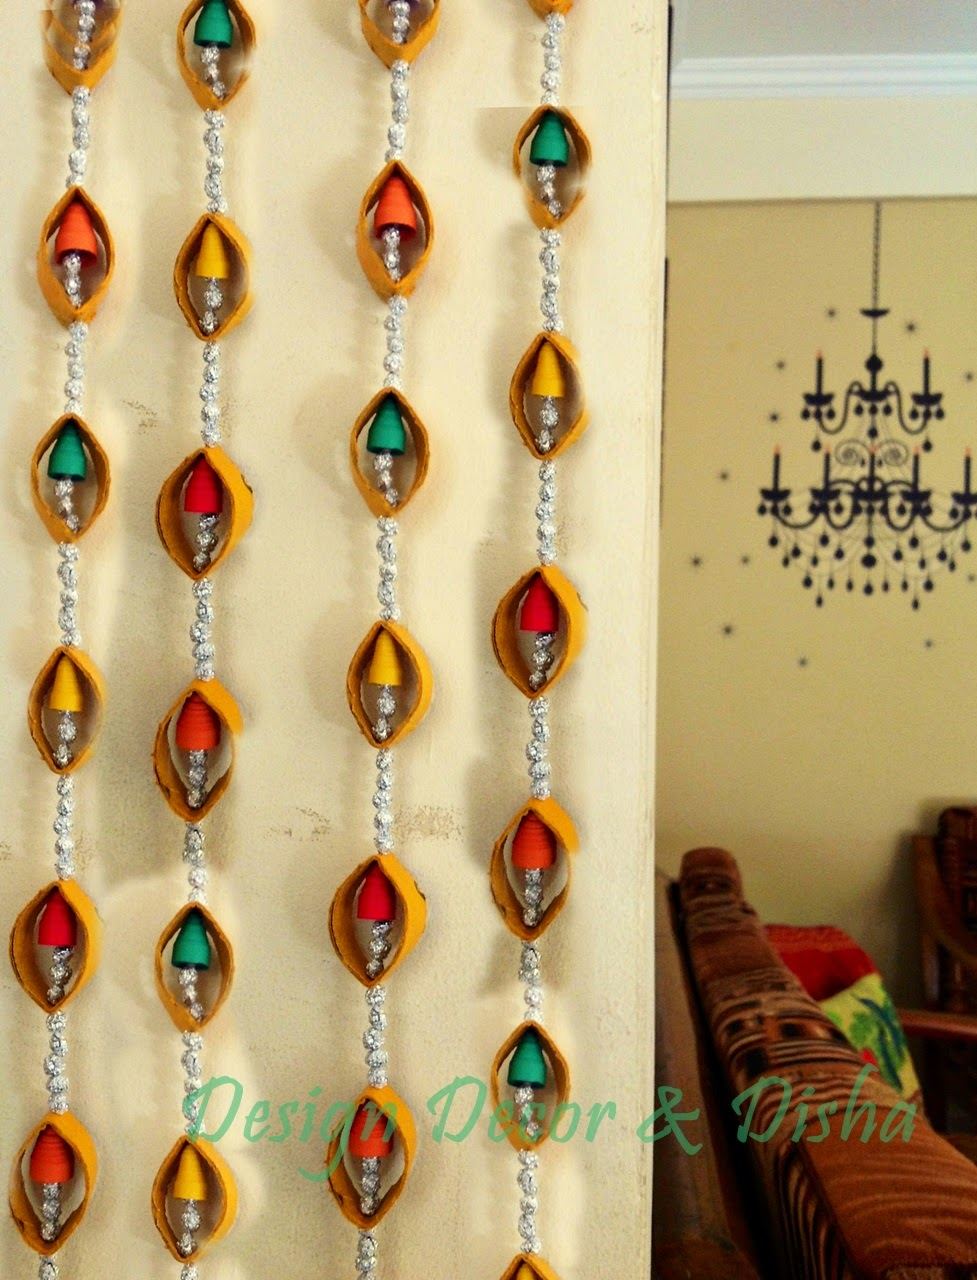 Wall Hanging Craft Design : Design decor disha an indian